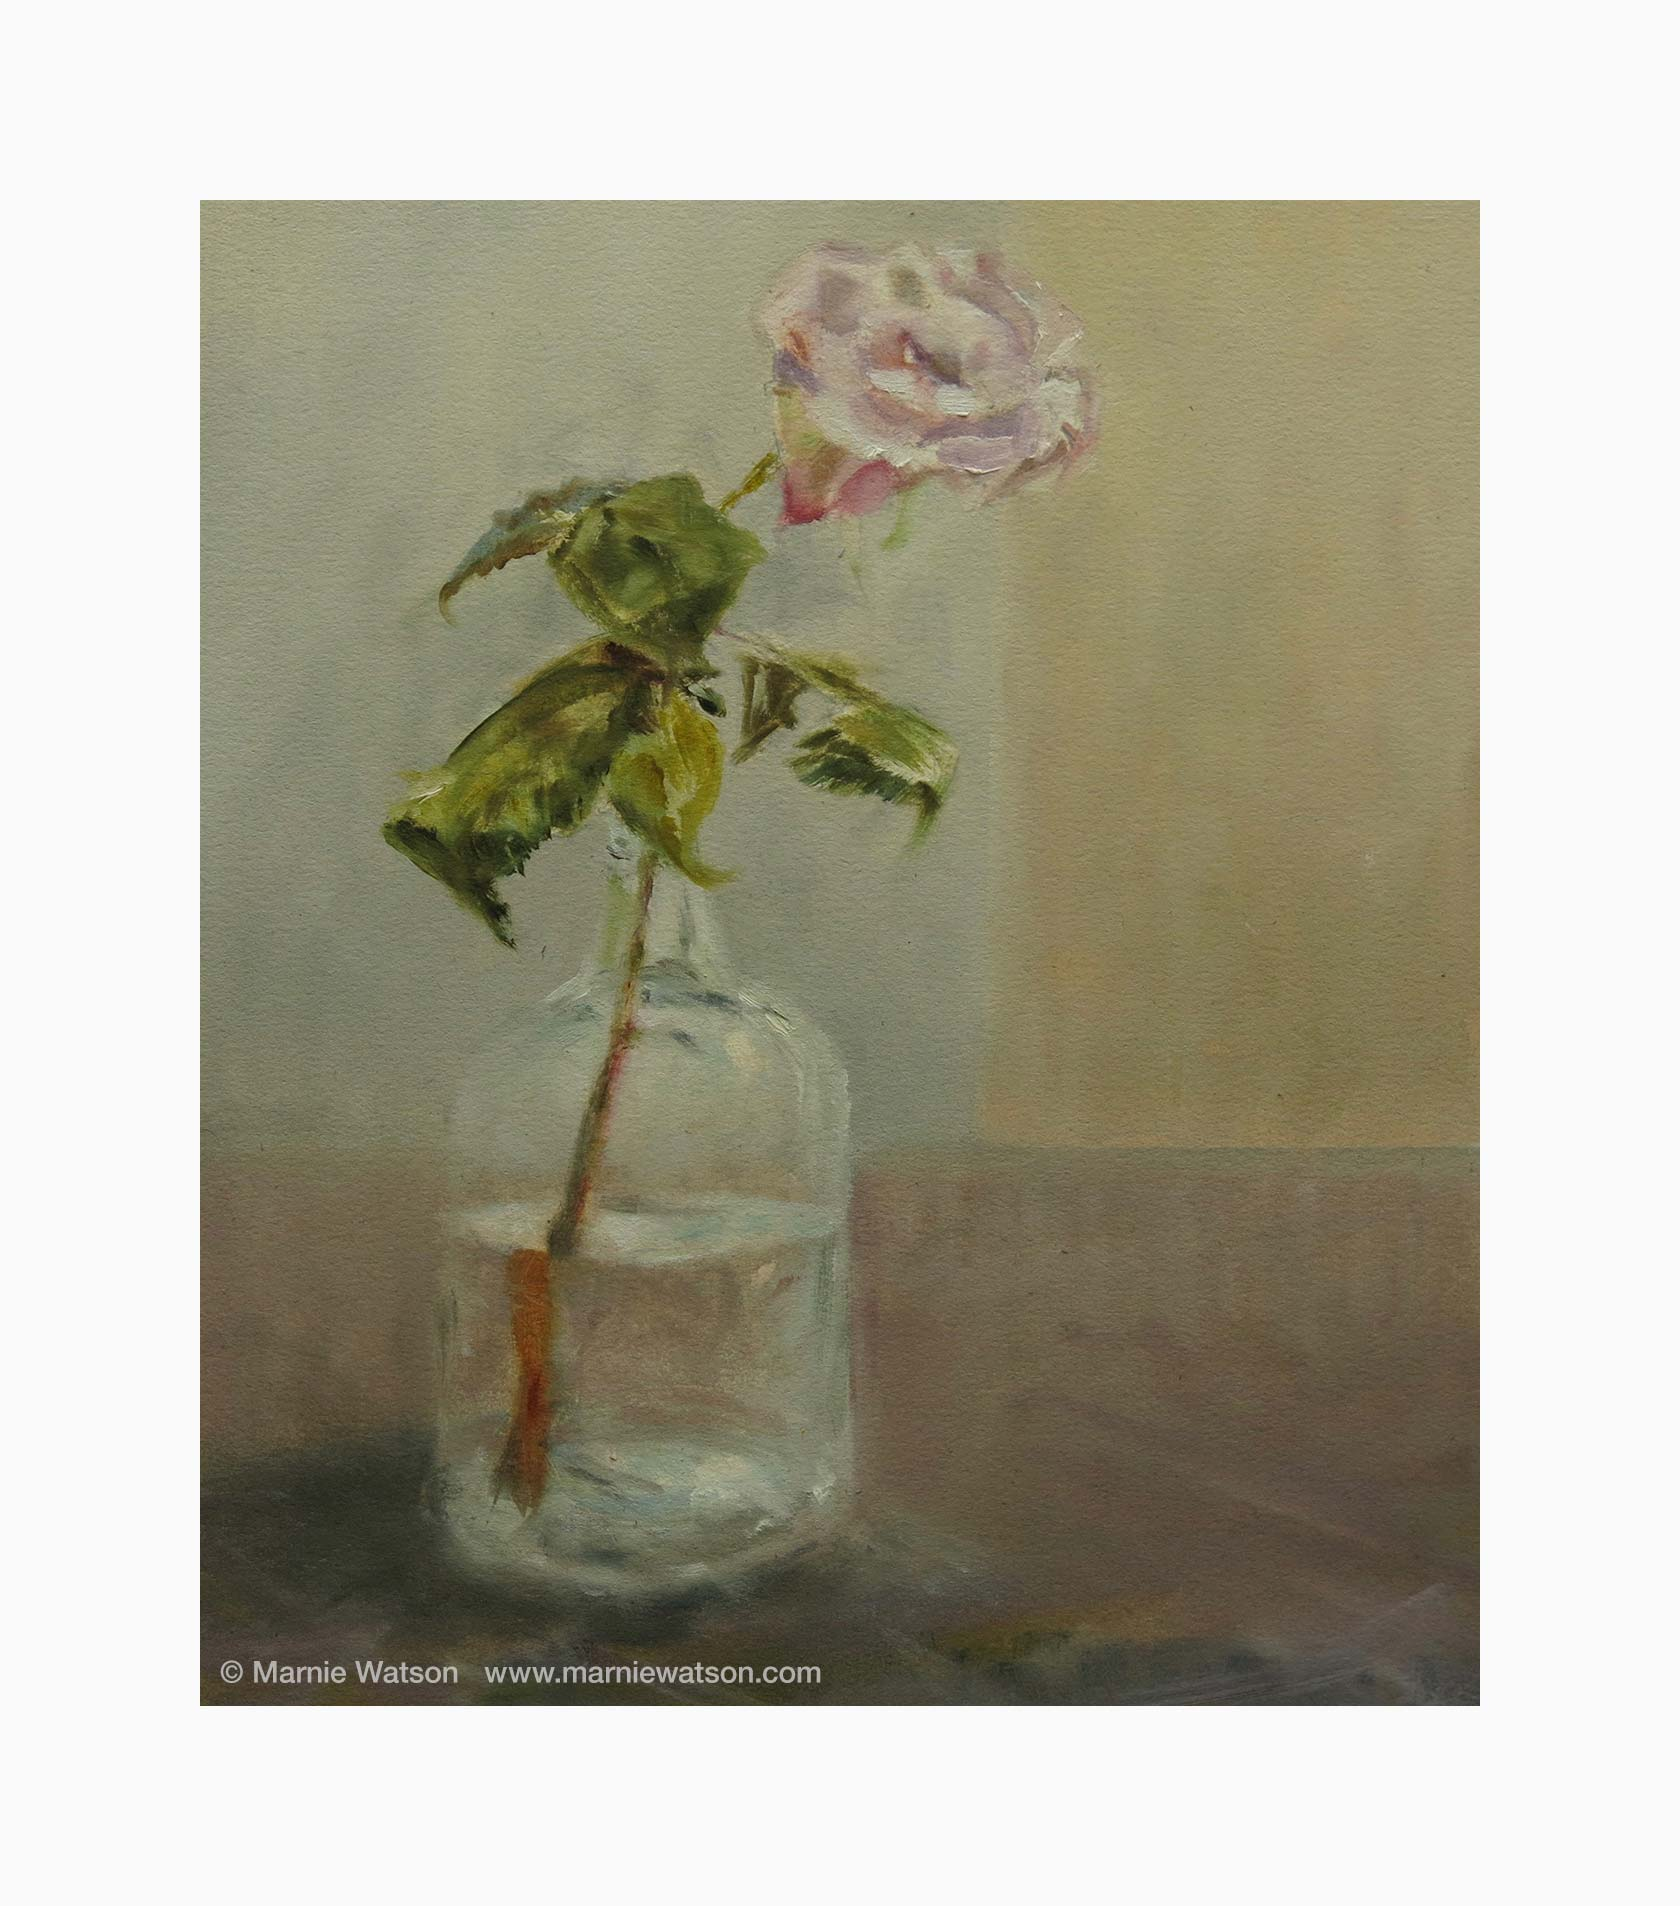 133 Rose In Bottle by Marnie Watson